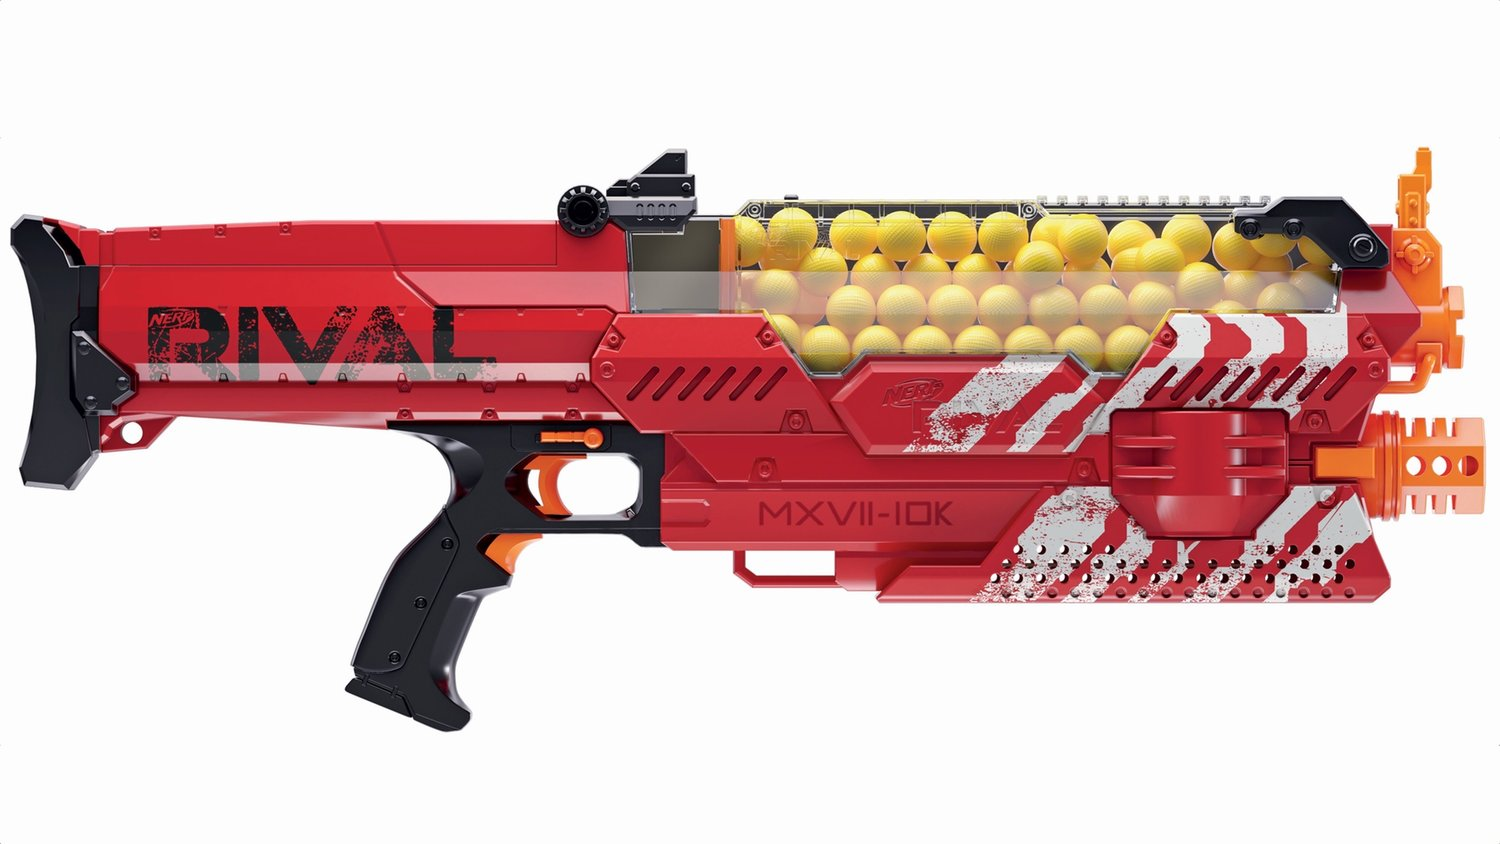 Nerf's Awesome New Rival Nemesis Gun Blasts 100 Rounds at 70 MPH